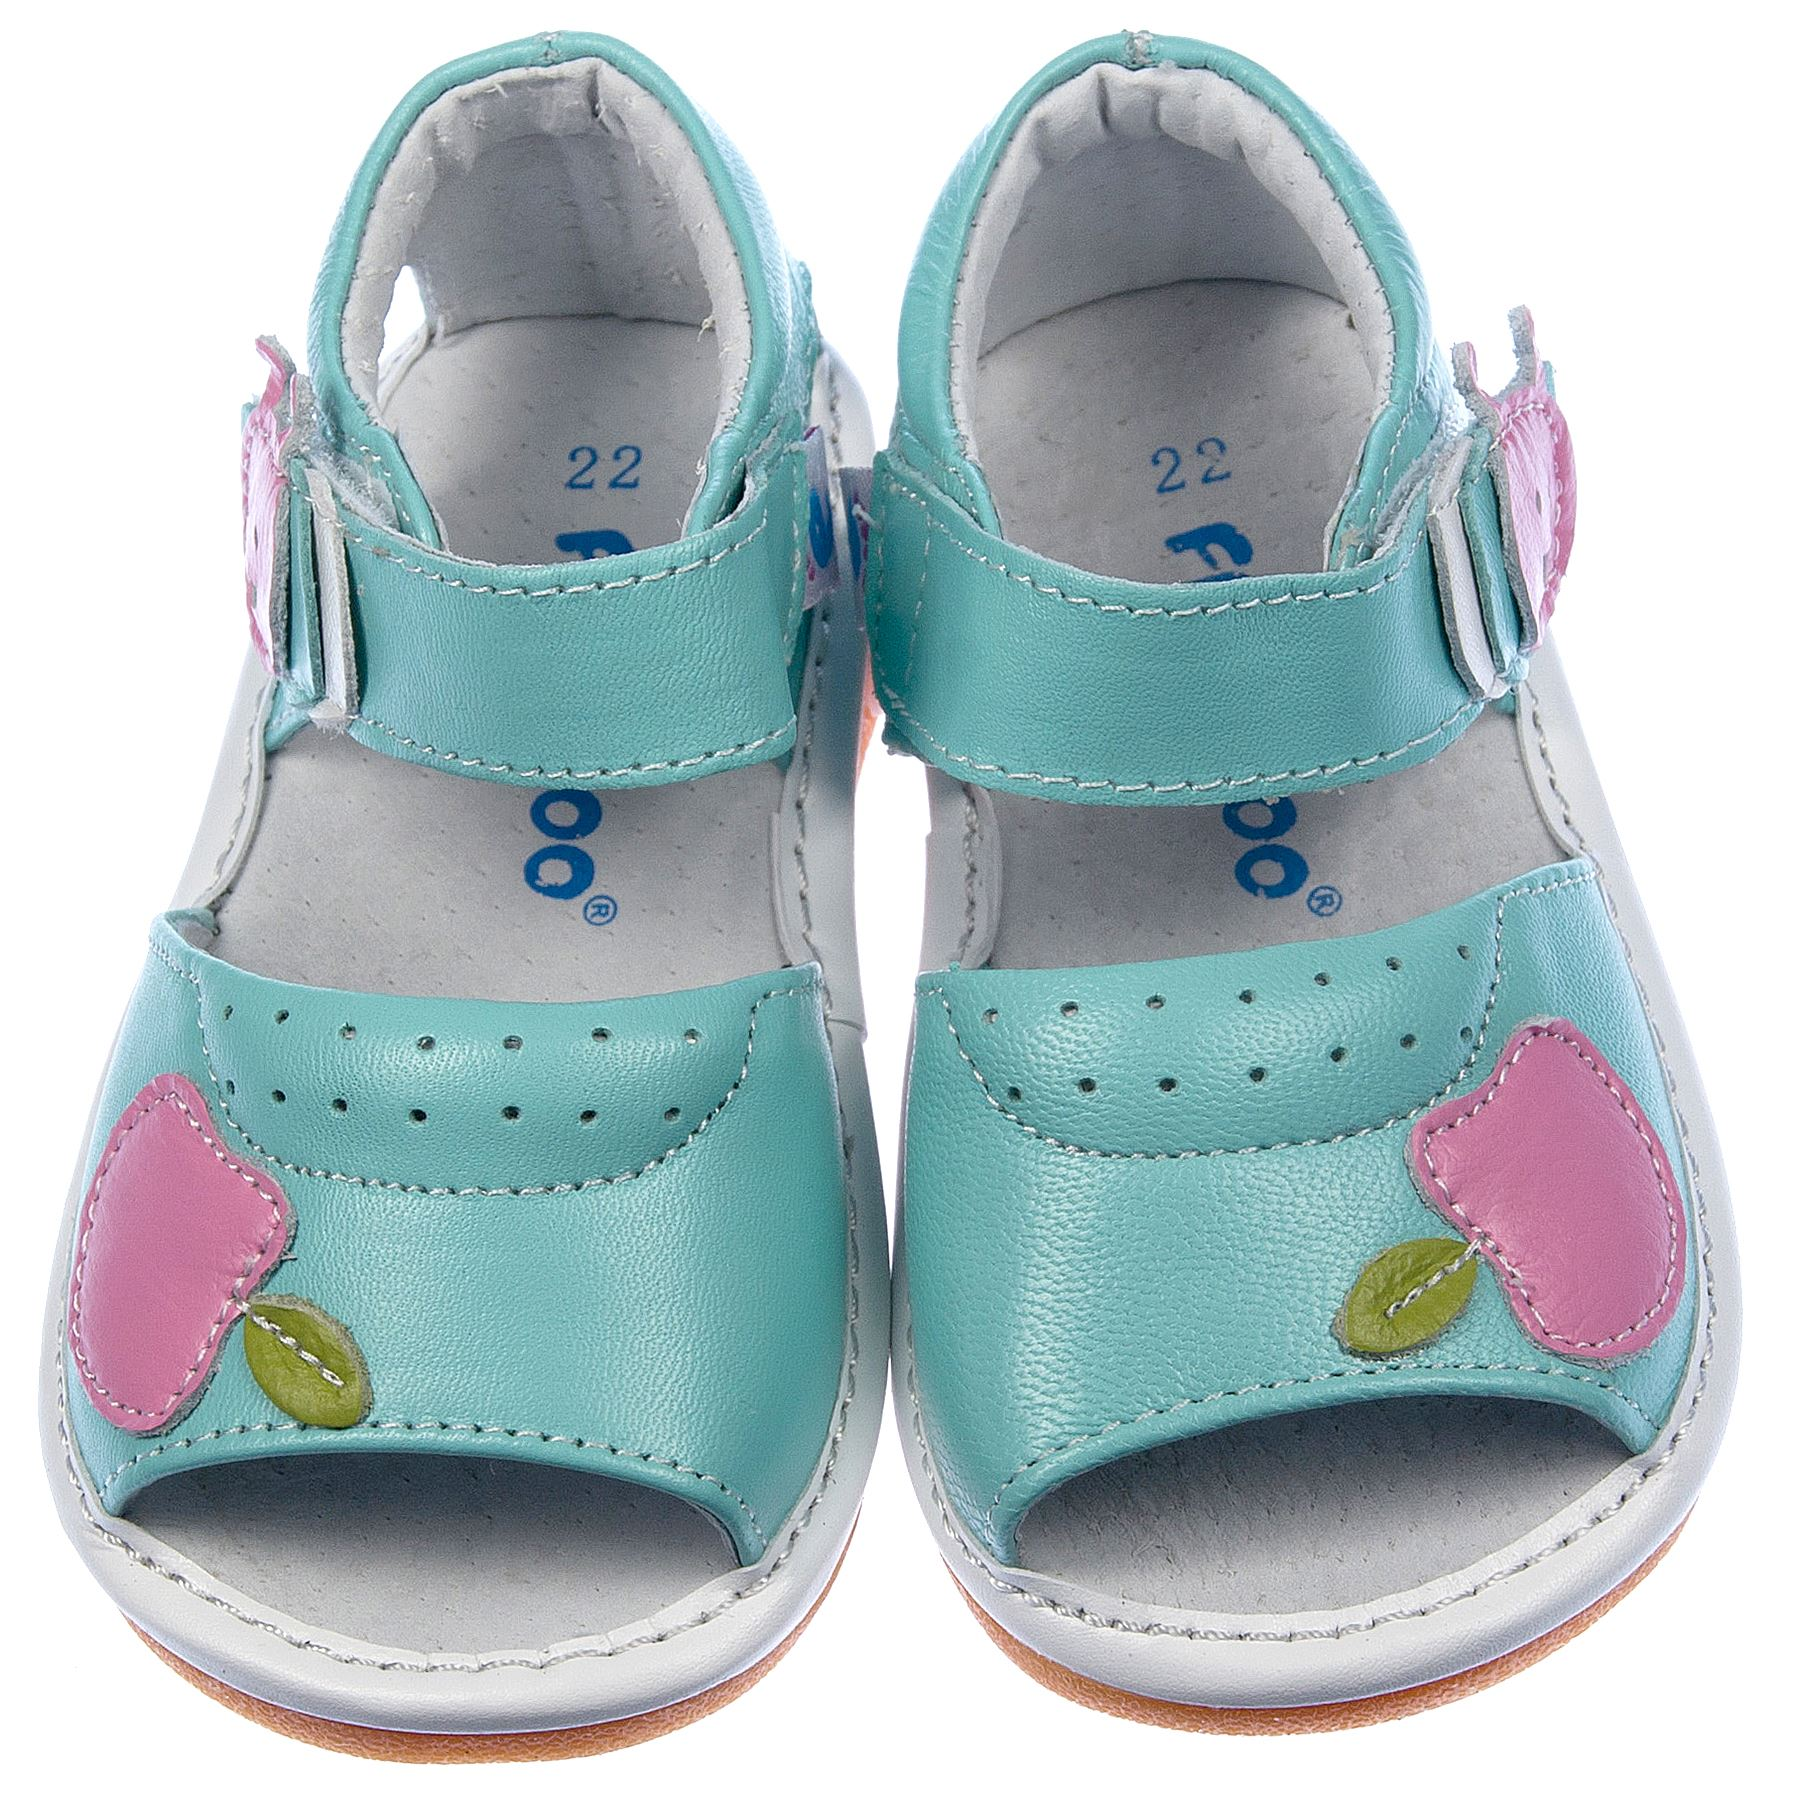 chaussures sandales fille b b enfant cuir v ritable cir turquoise rose ebay. Black Bedroom Furniture Sets. Home Design Ideas